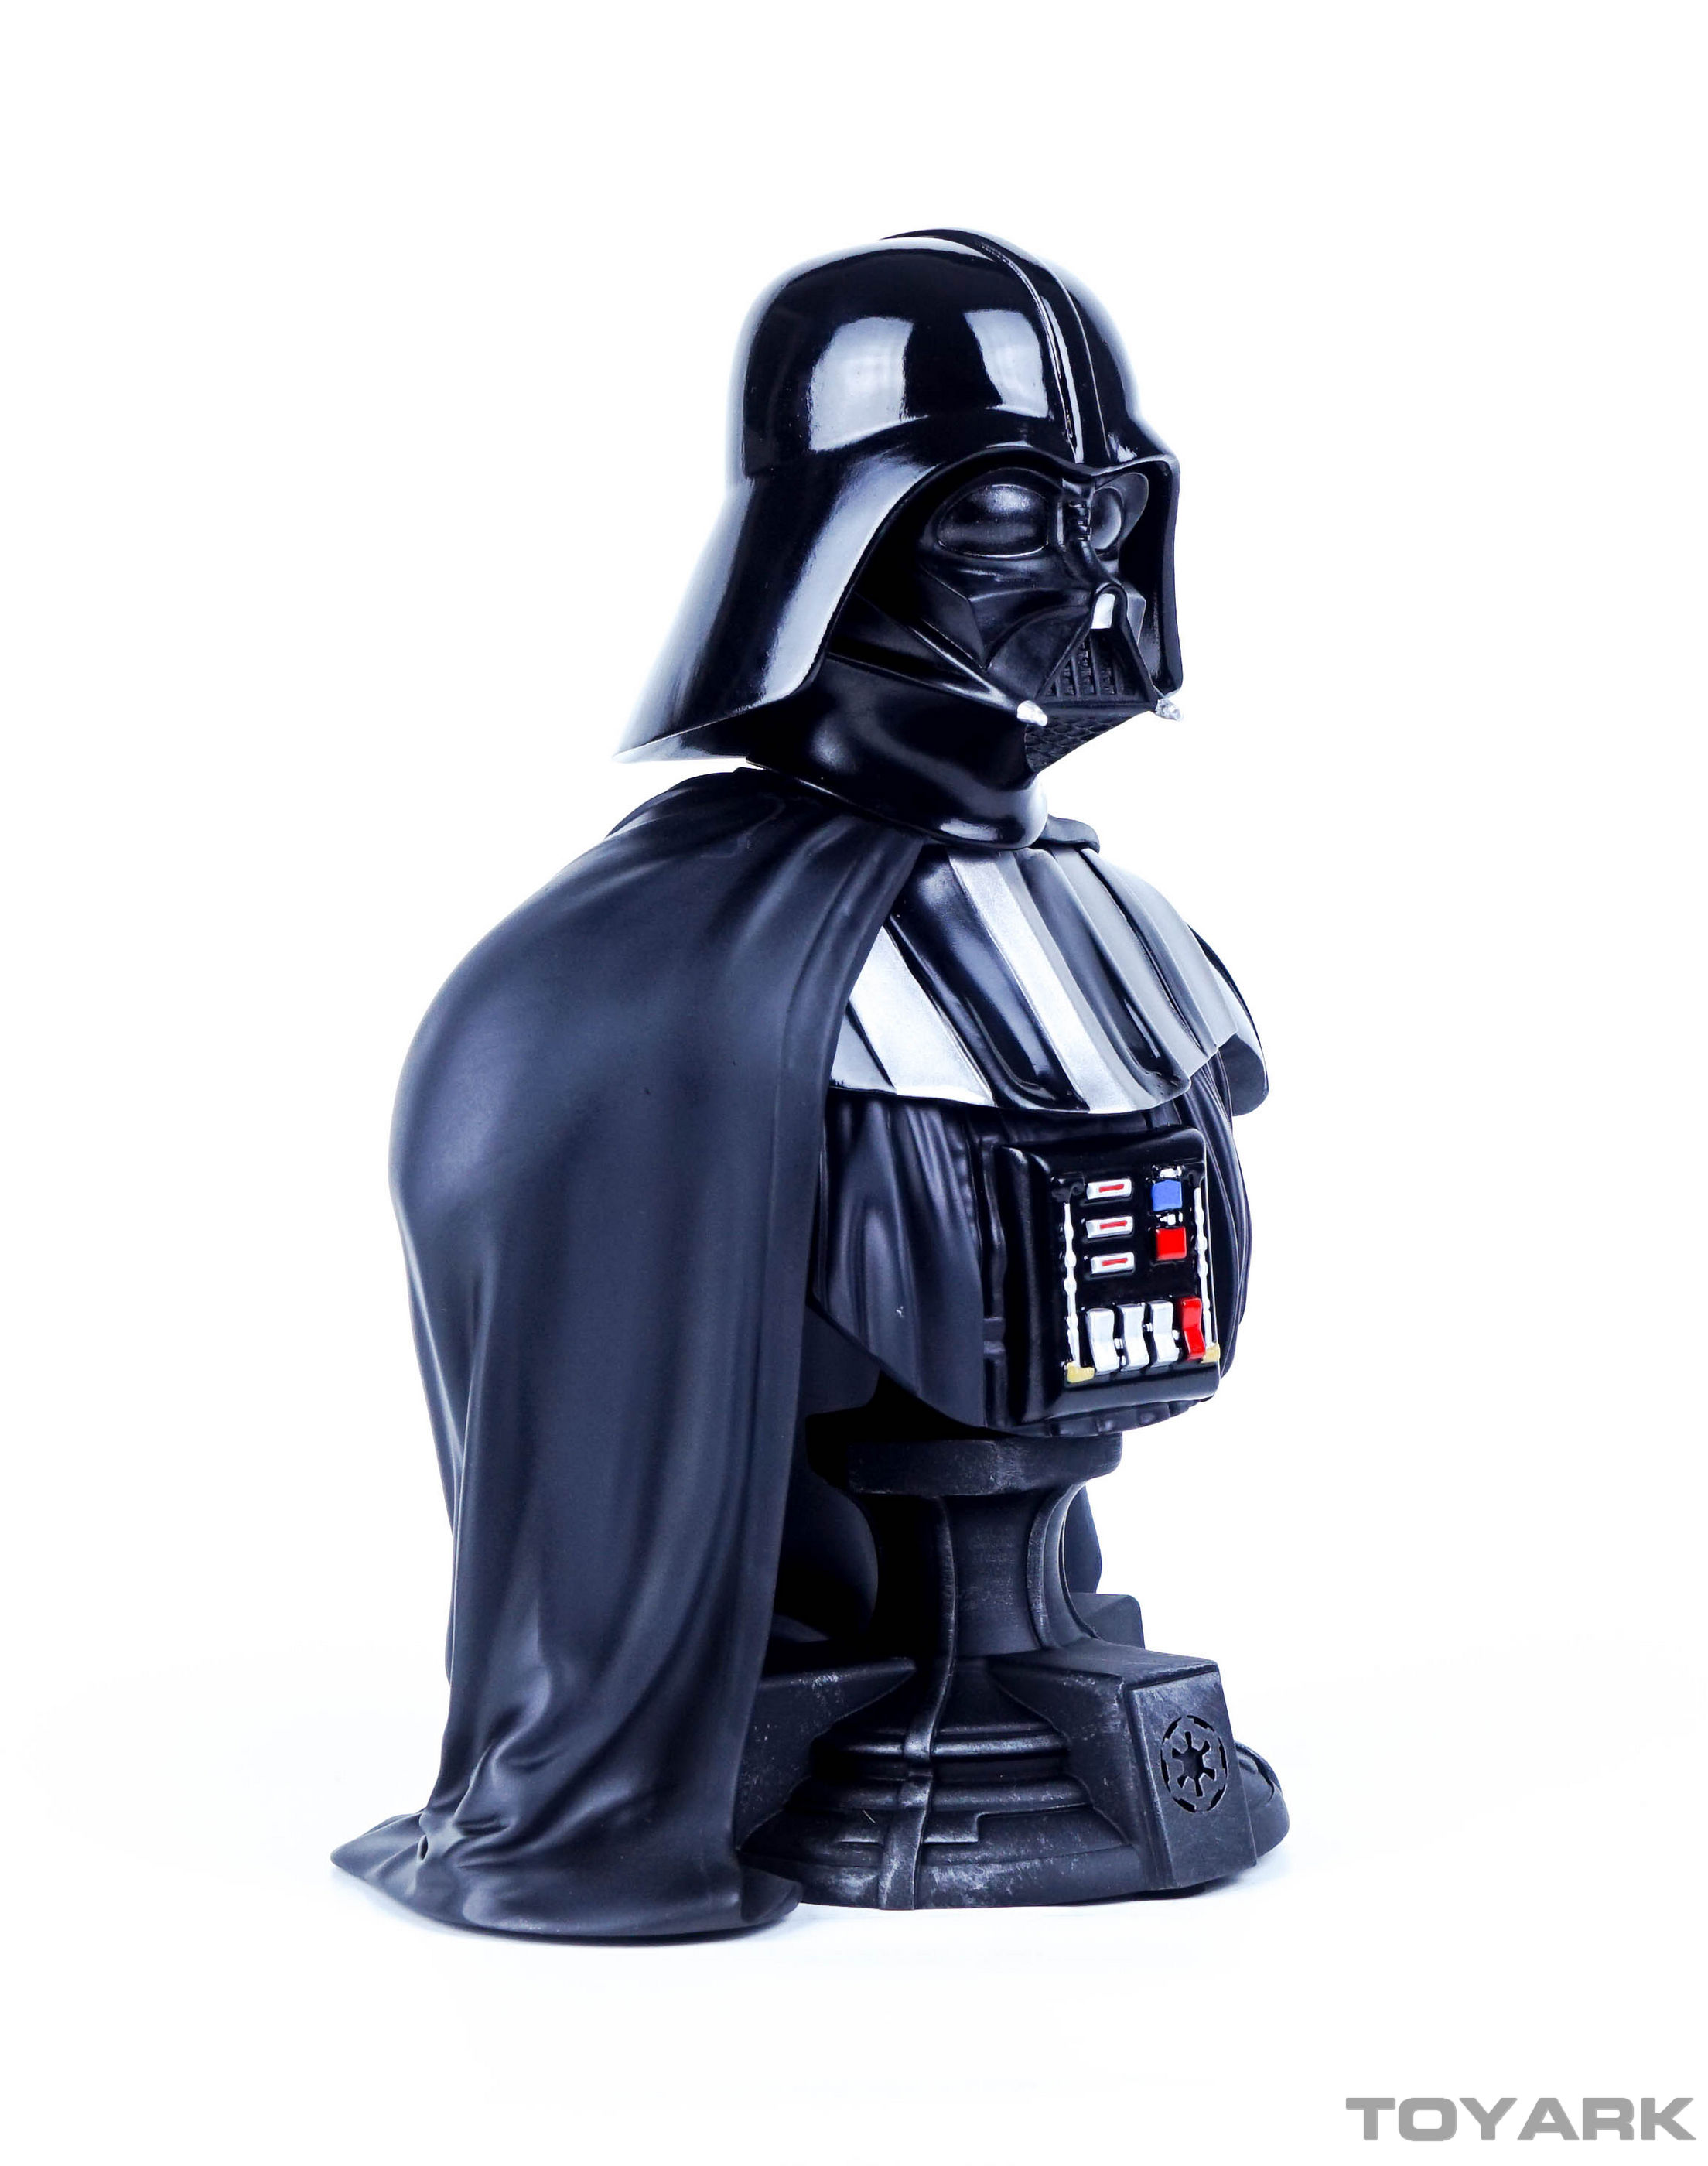 http://news.toyark.com/wp-content/uploads/sites/4/2015/12/Vader-Bust-011.jpg